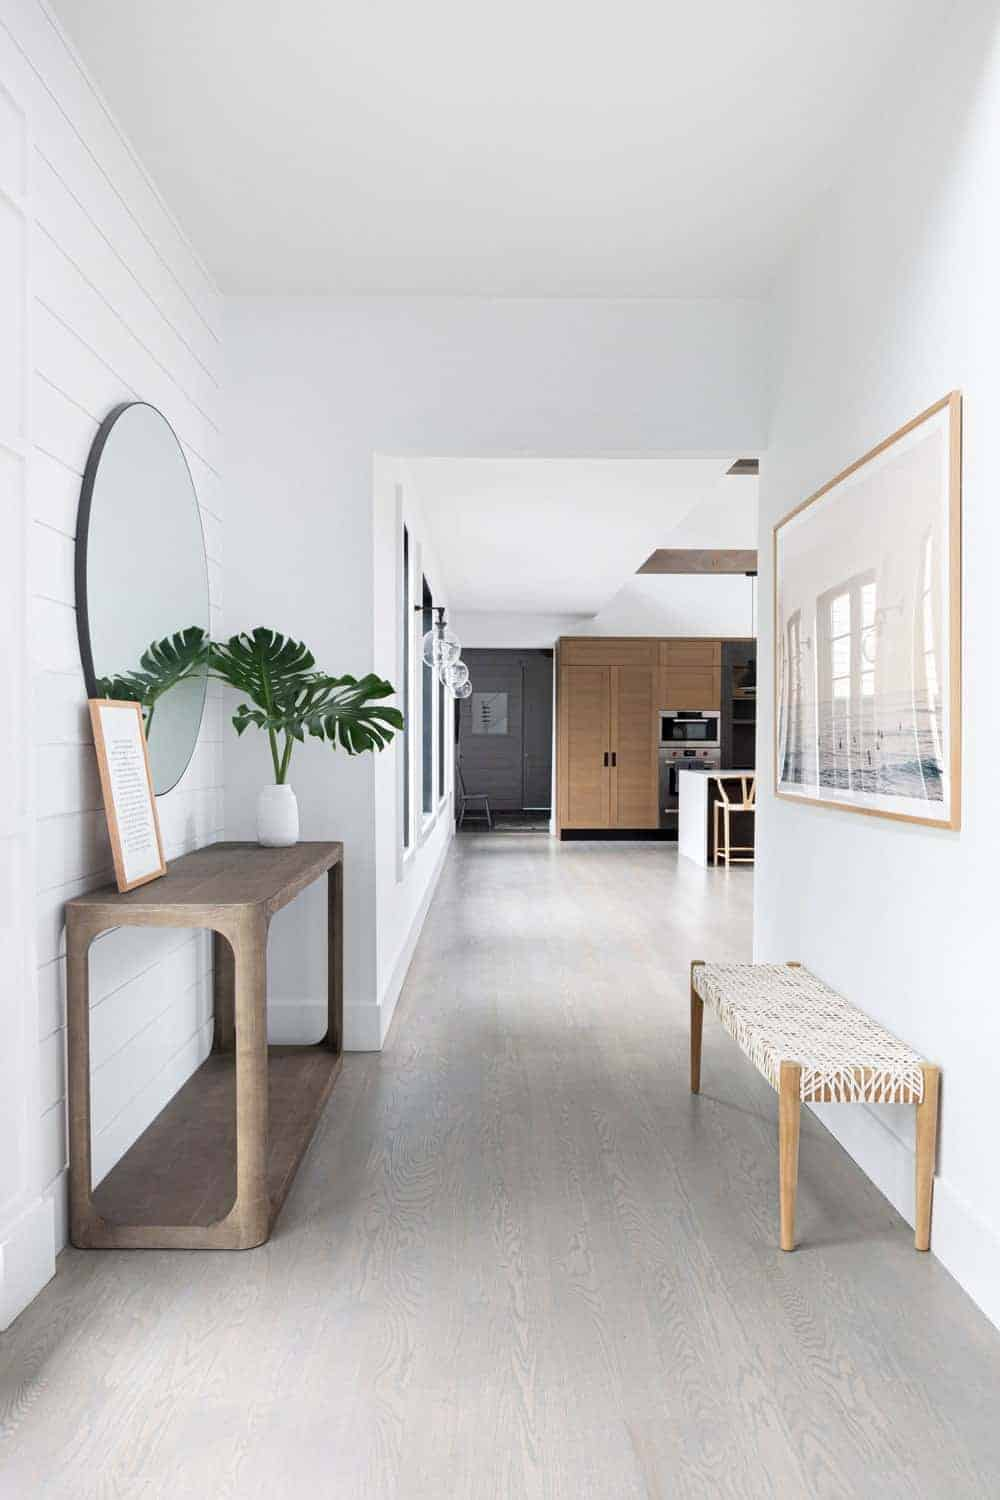 This hallway features gray flooring and white walls and ceiling. There's a side table topped by a potted plant along with a round mirror on the white wall.